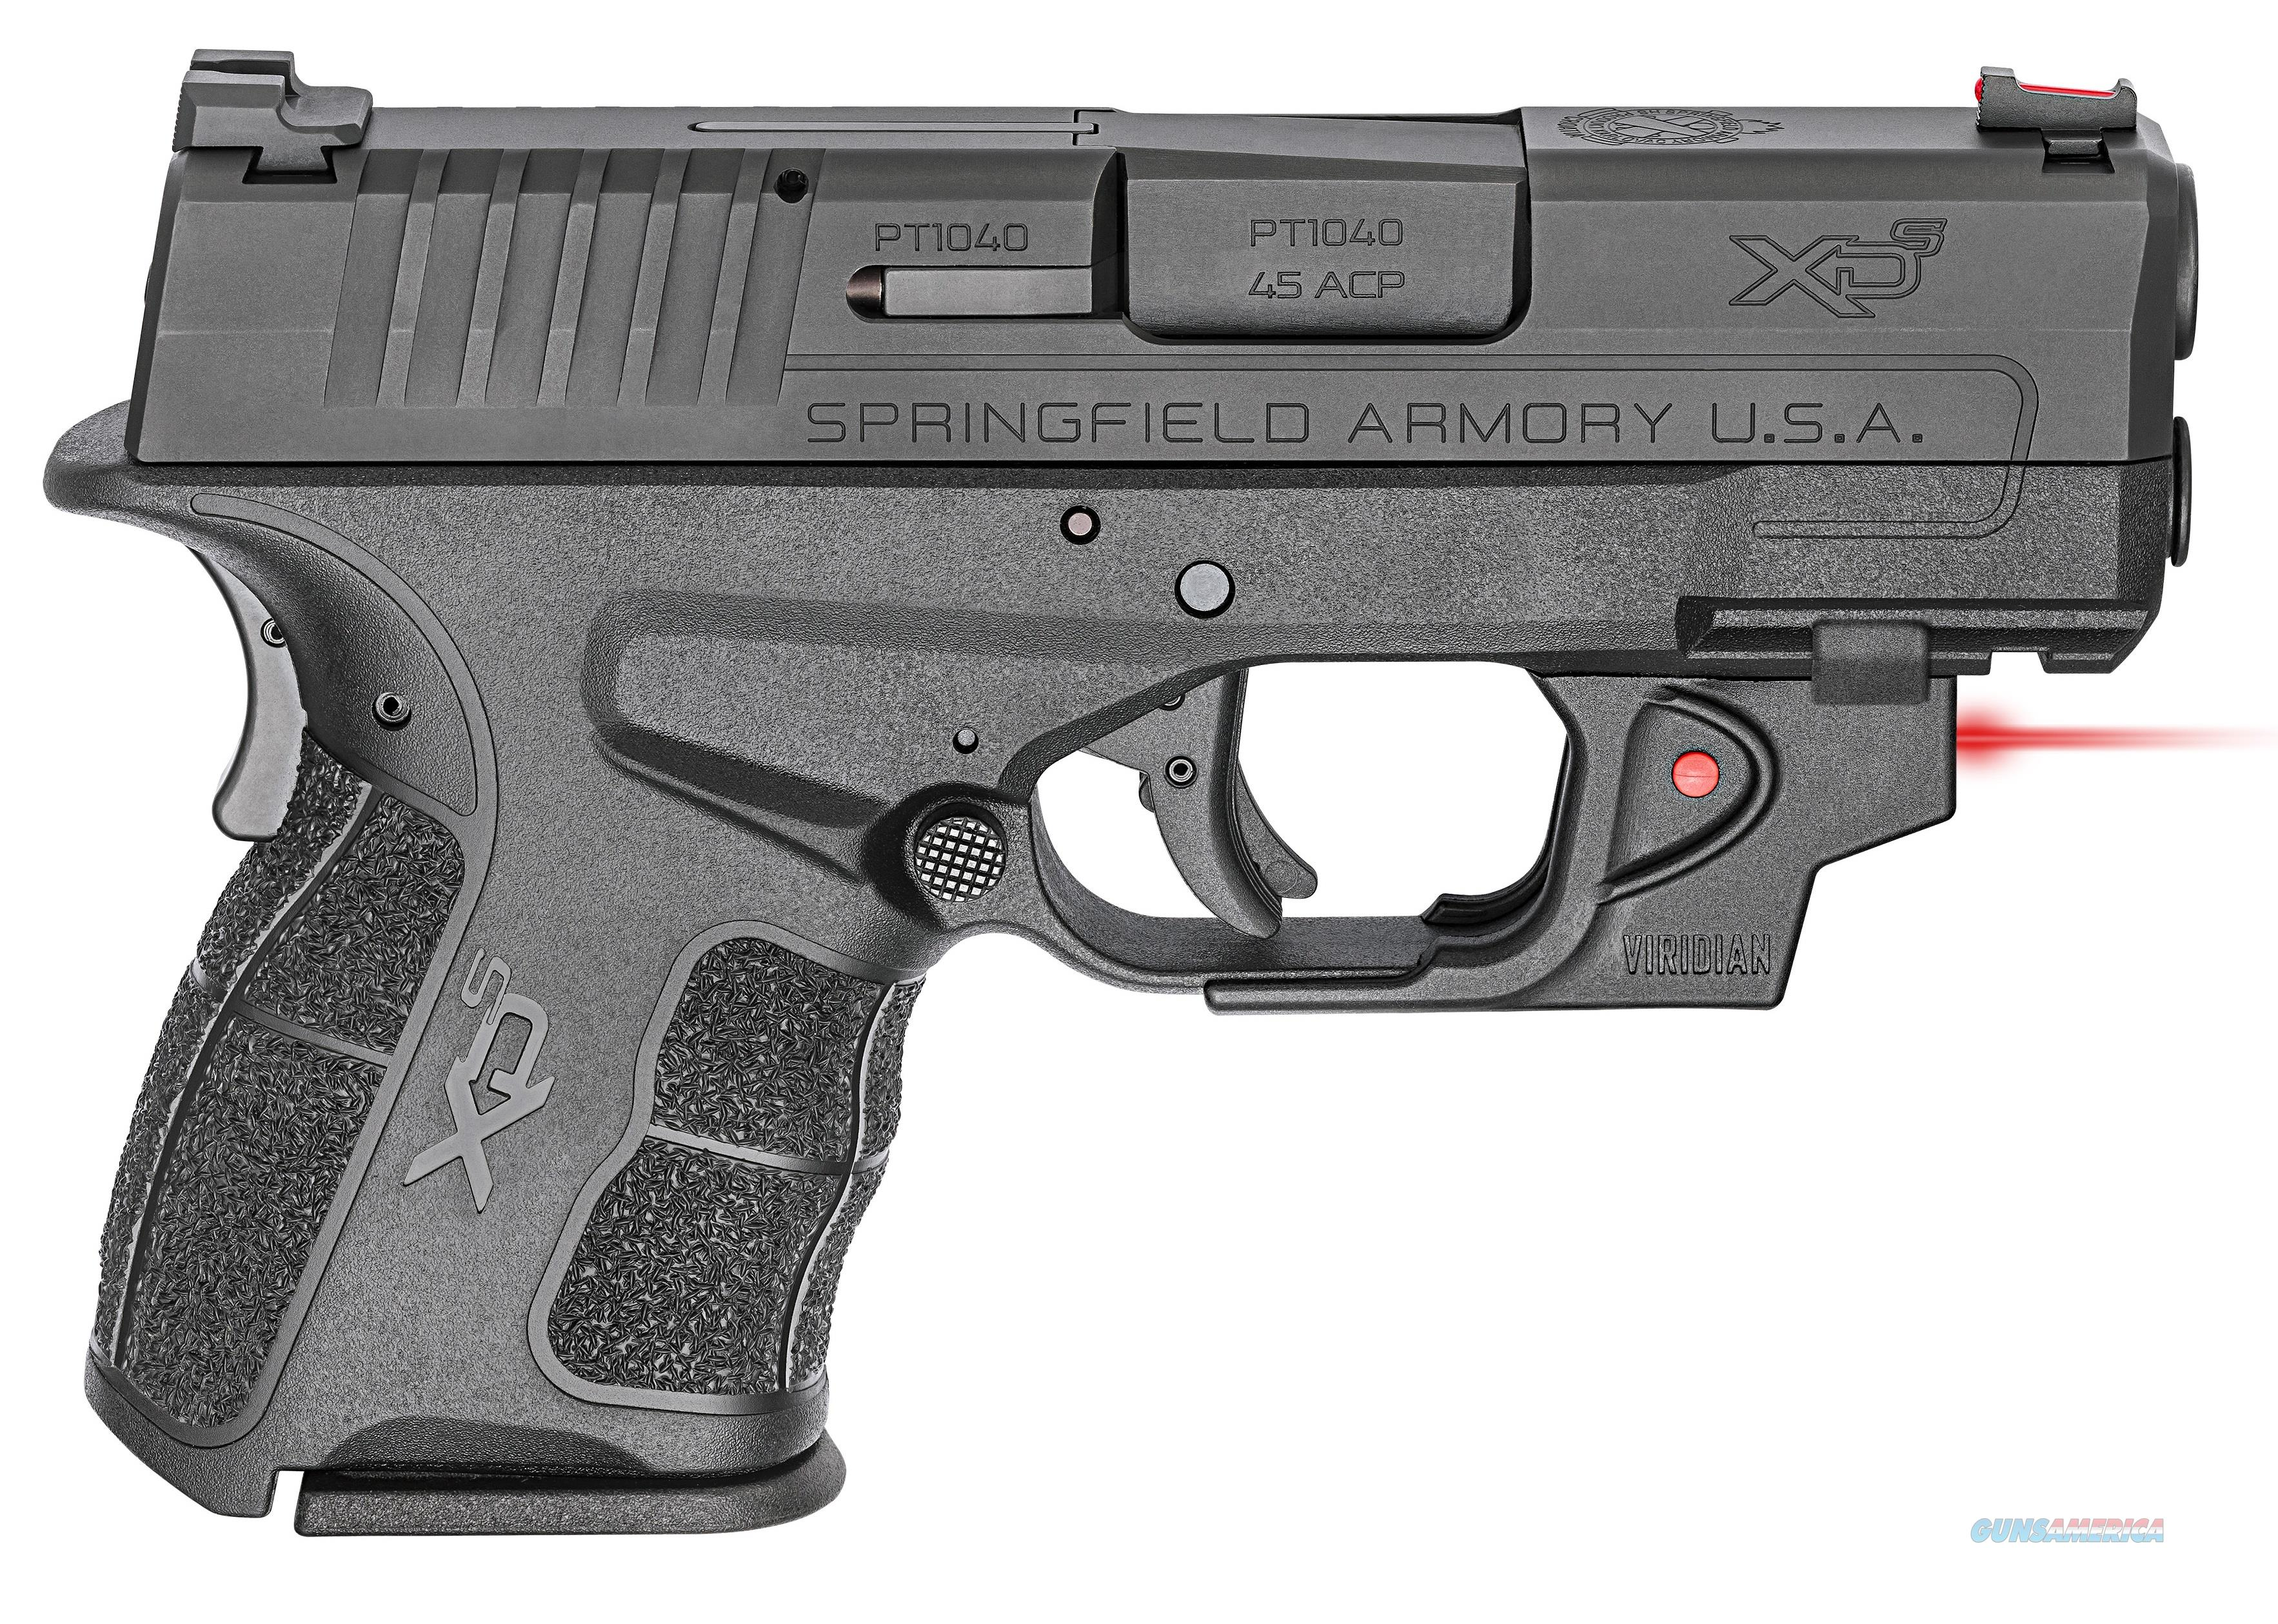 Springfield Armory XDS MOD2 45ACP BK 3.3 RD LSR VERIDIAN RED LASER | 2 MAGS  Guns > Pistols > Springfield Armory Pistols > XD-S